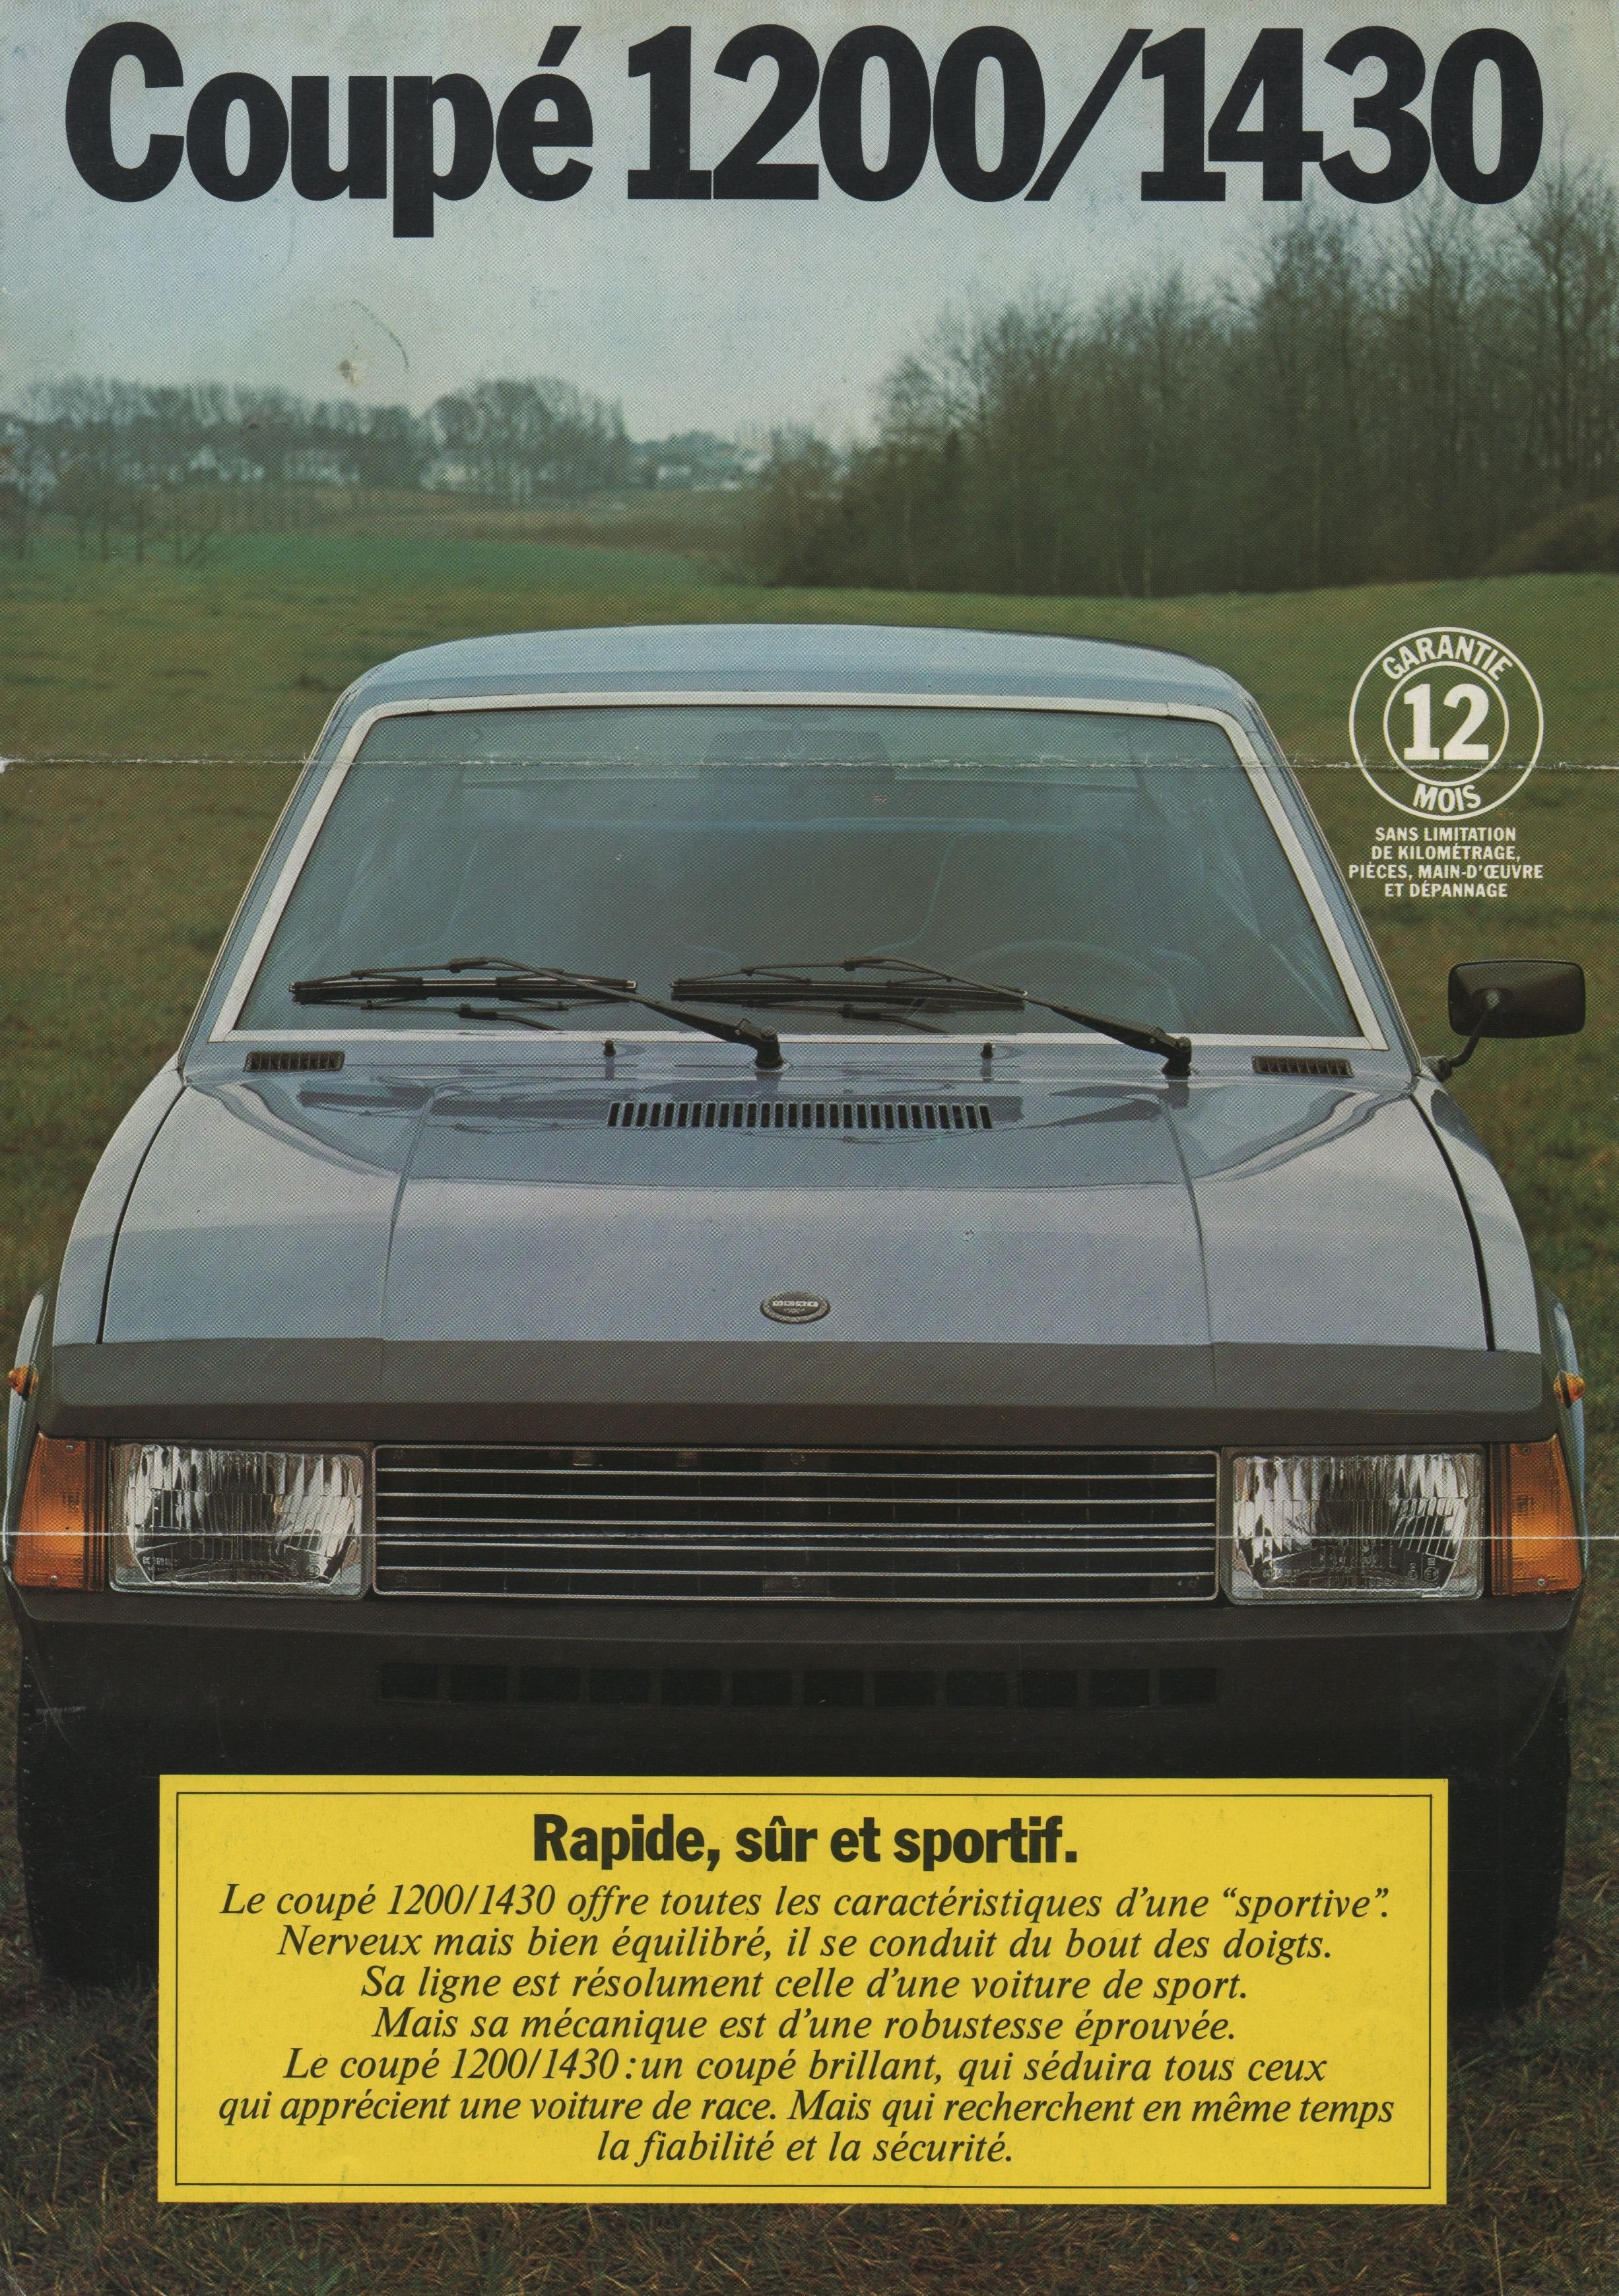 fiat-coupe-1200-1430-1